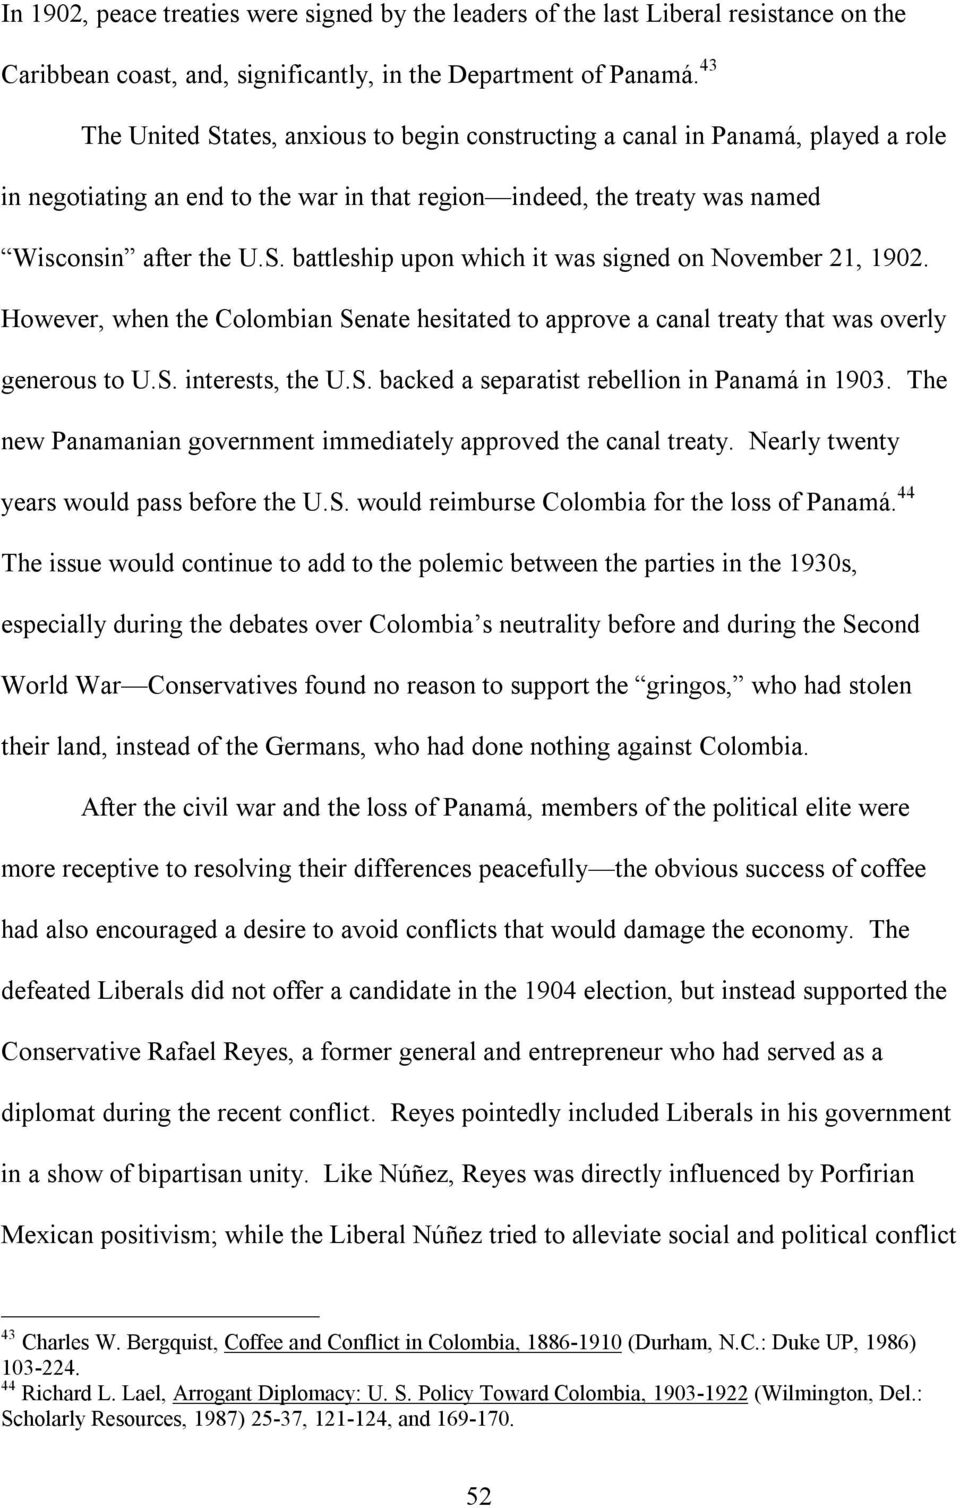 However, when the Colombian Senate hesitated to approve a canal treaty that was overly generous to U.S. interests, the U.S. backed a separatist rebellion in Panamá in 1903.